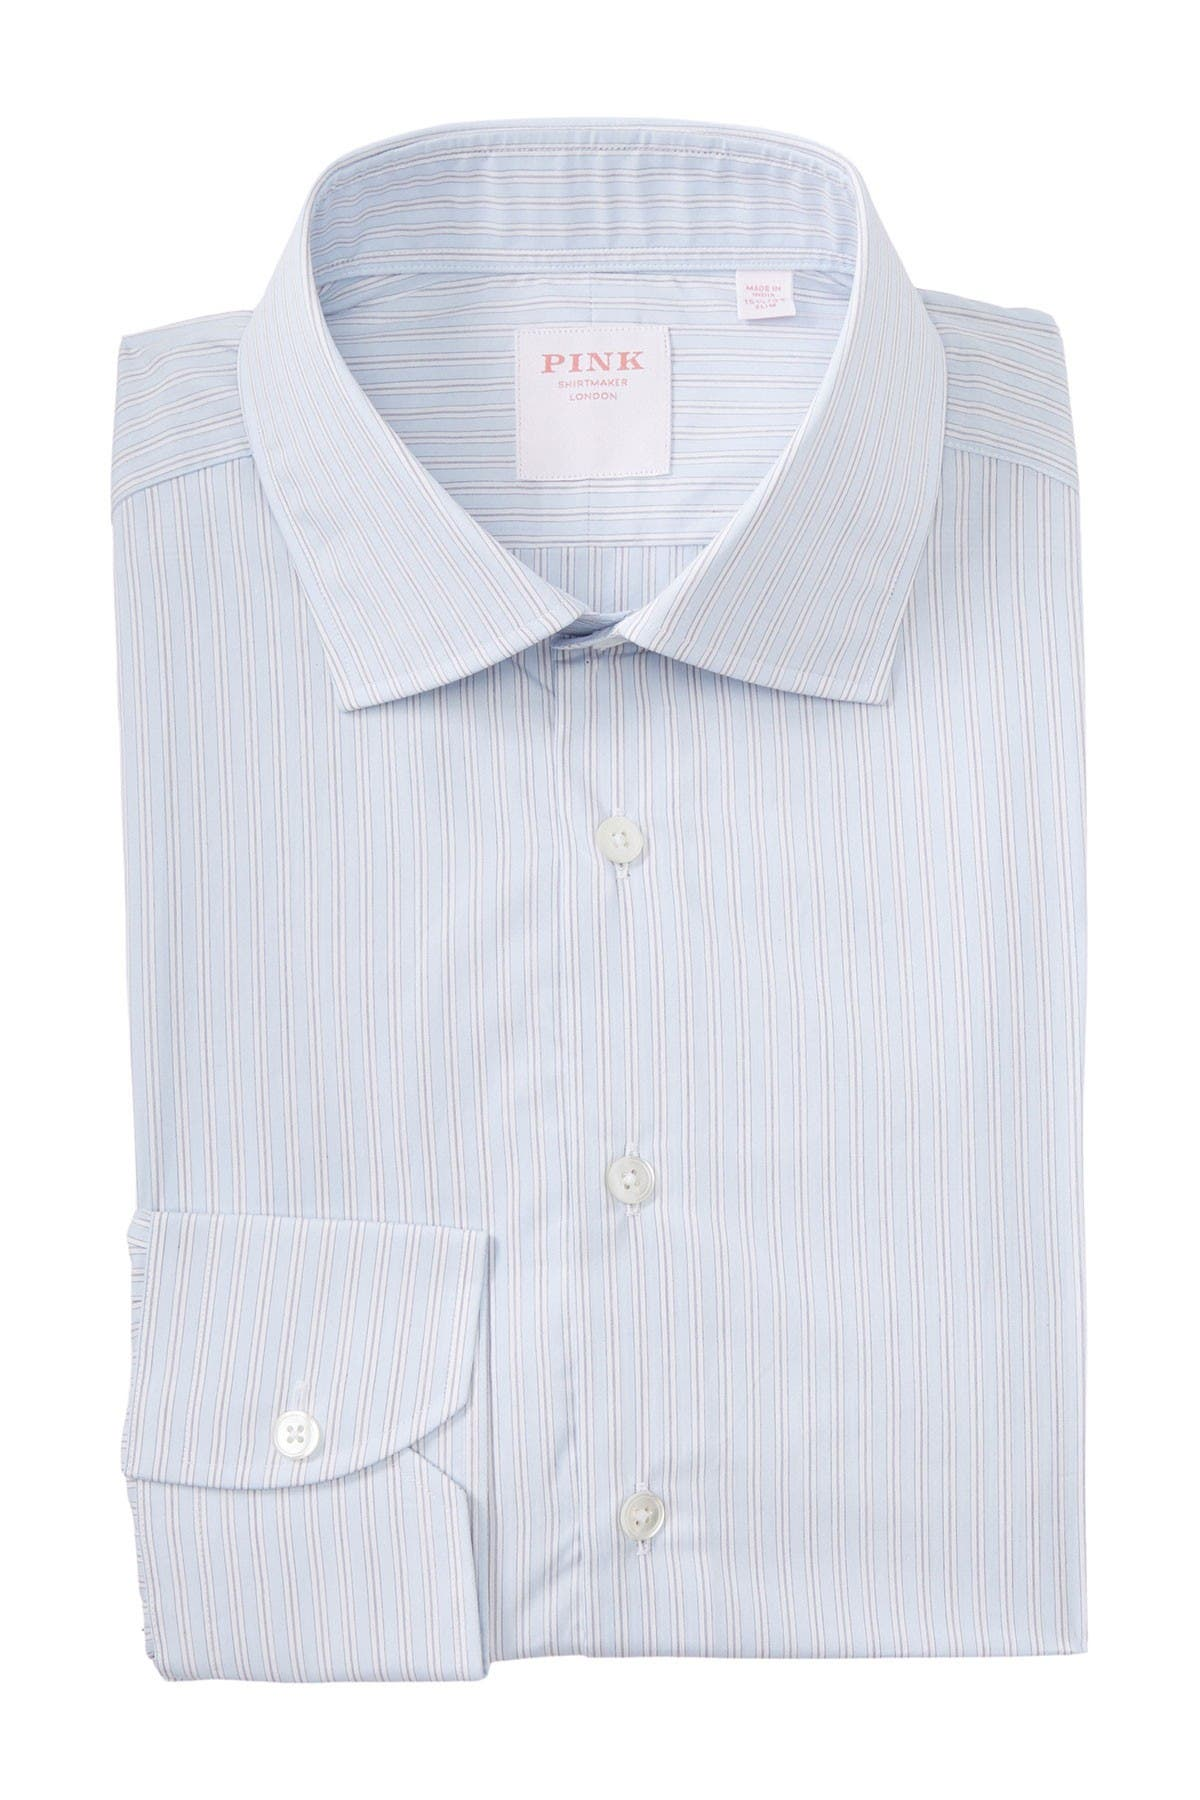 Image of THOMAS PINK Piumino Stripe Print Dress Shirt